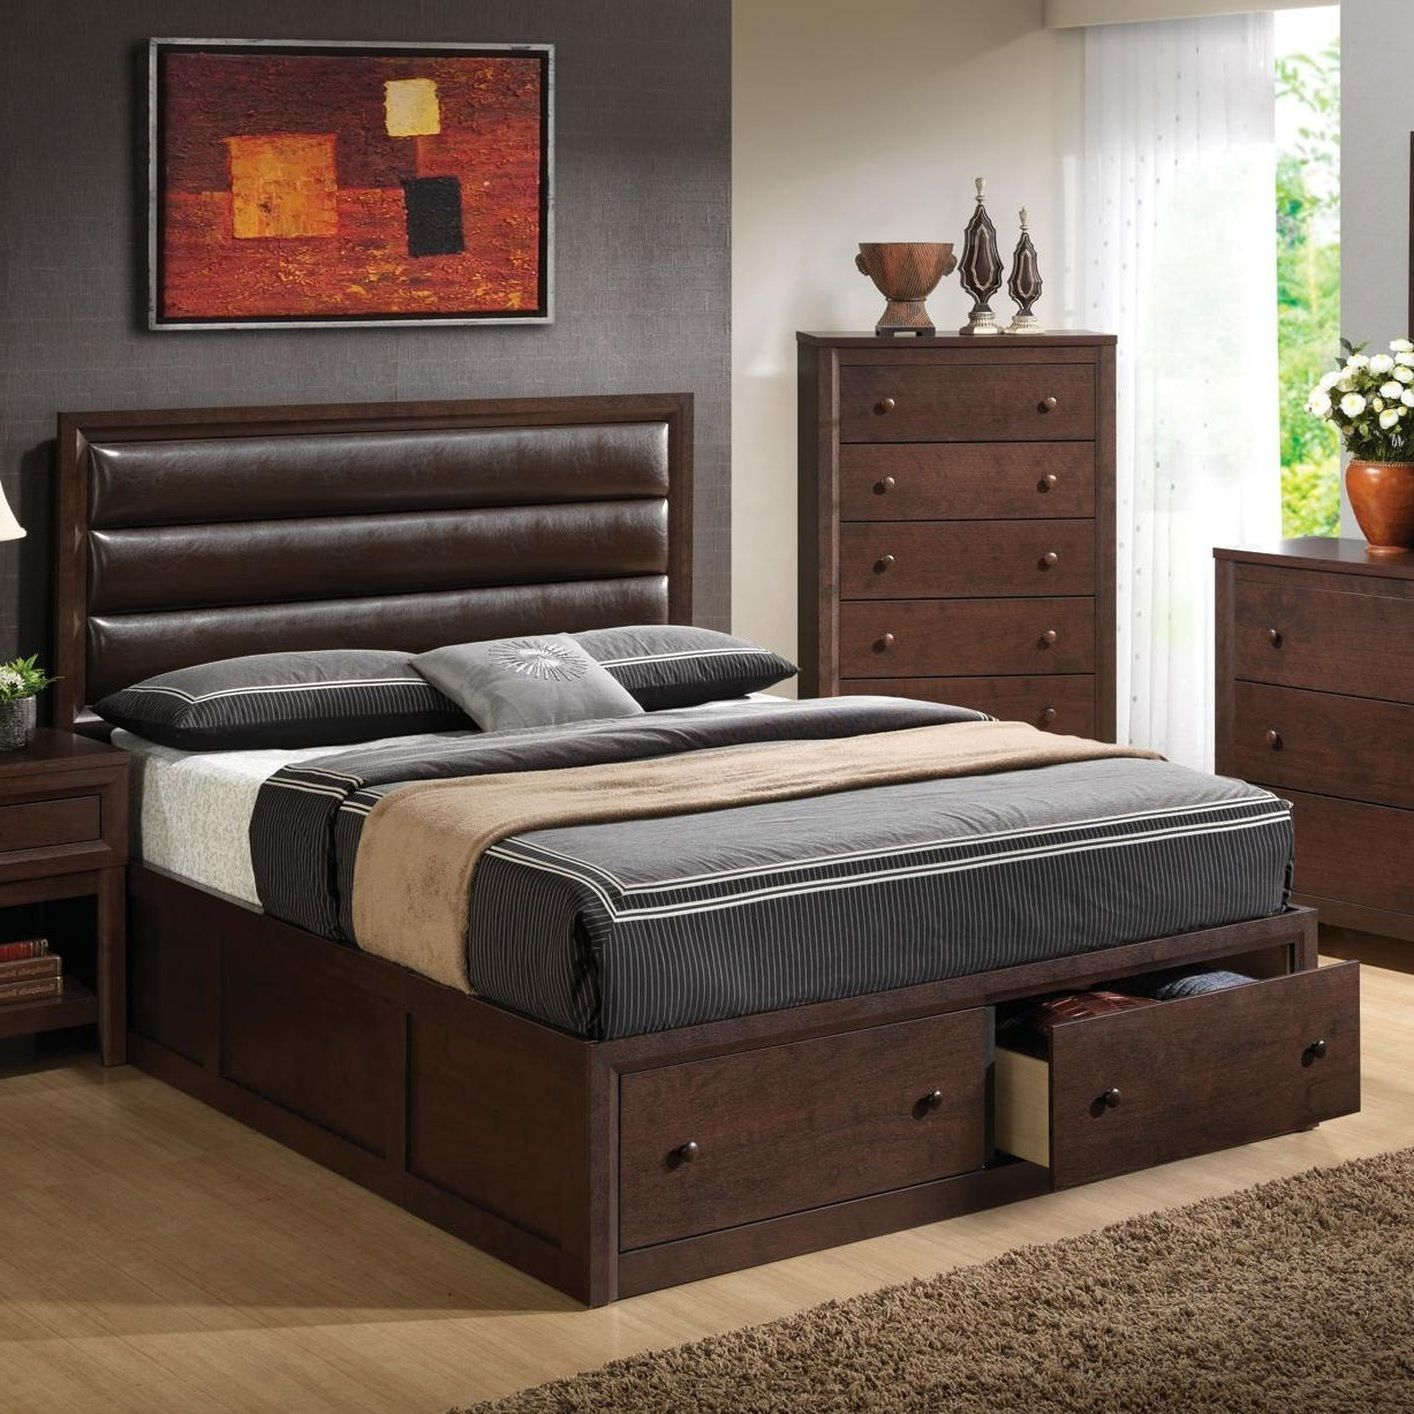 Mesmerizing Queen Size Headboards Bedroom sets, Cozy